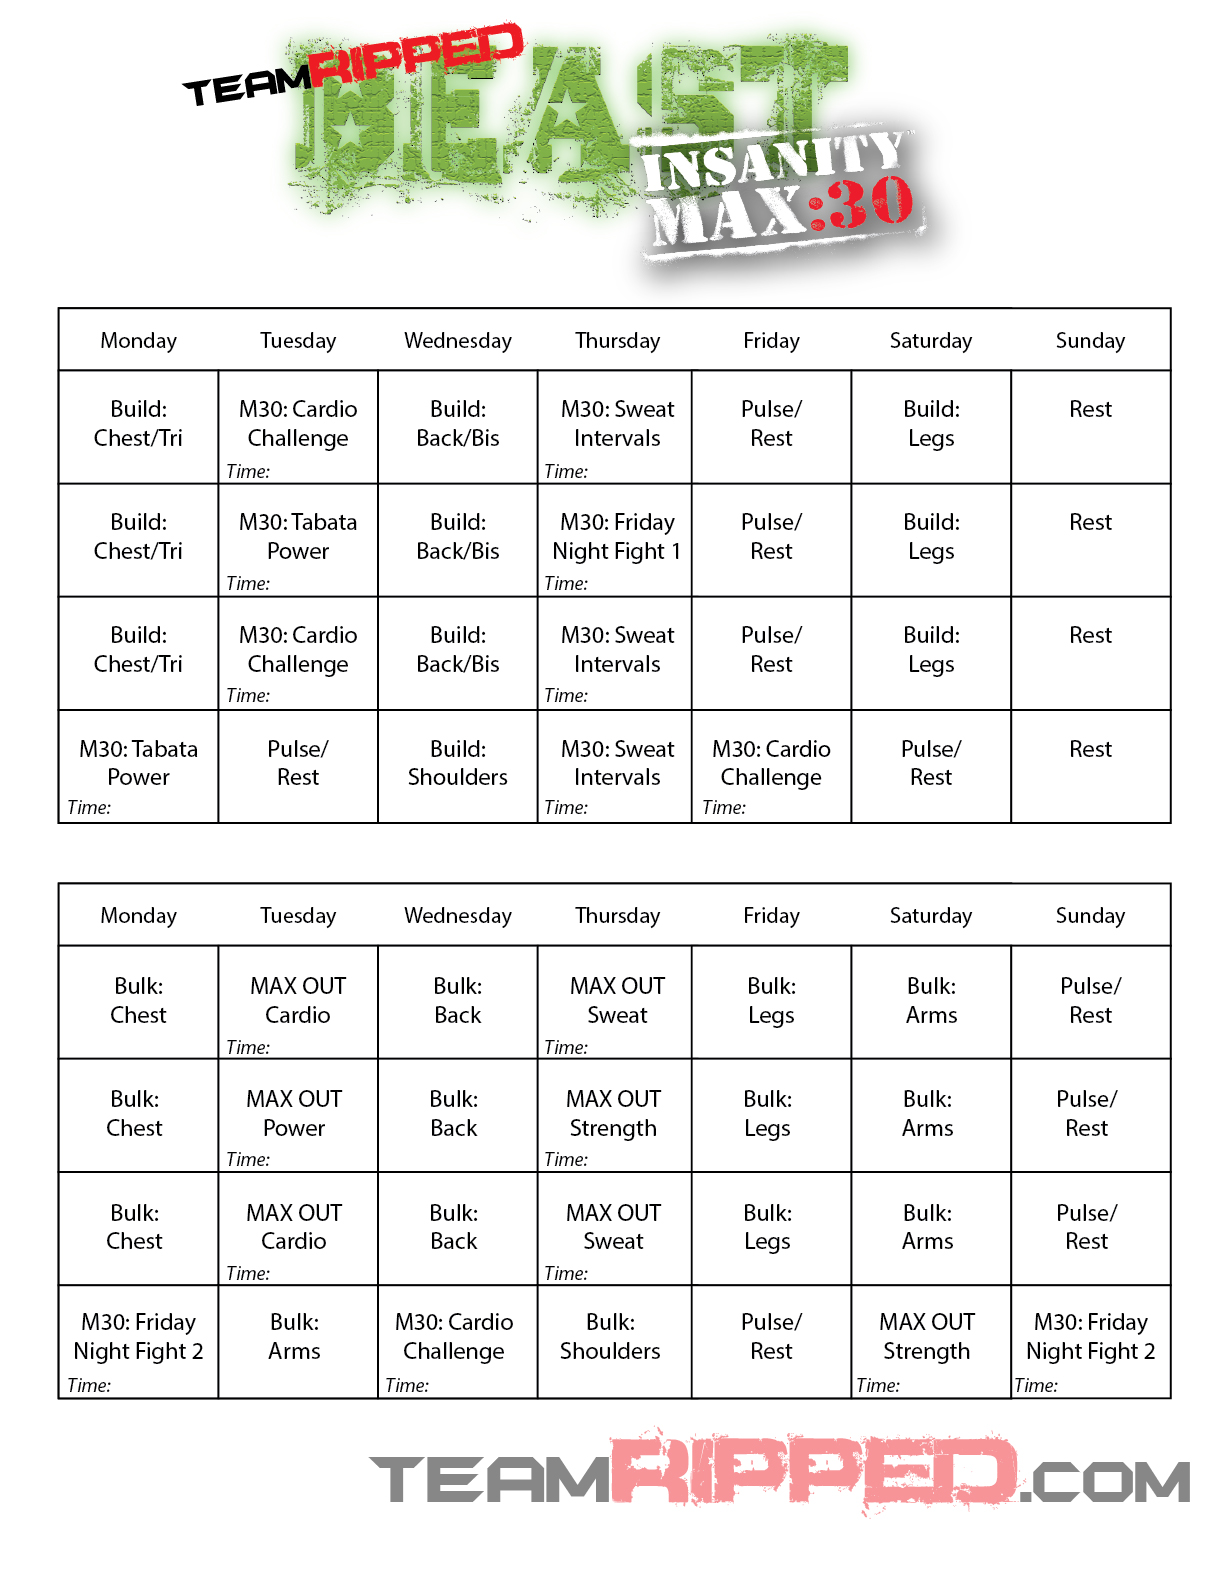 My Hybrid Worksheets Calendars teamRIPPED – Insanity Worksheets